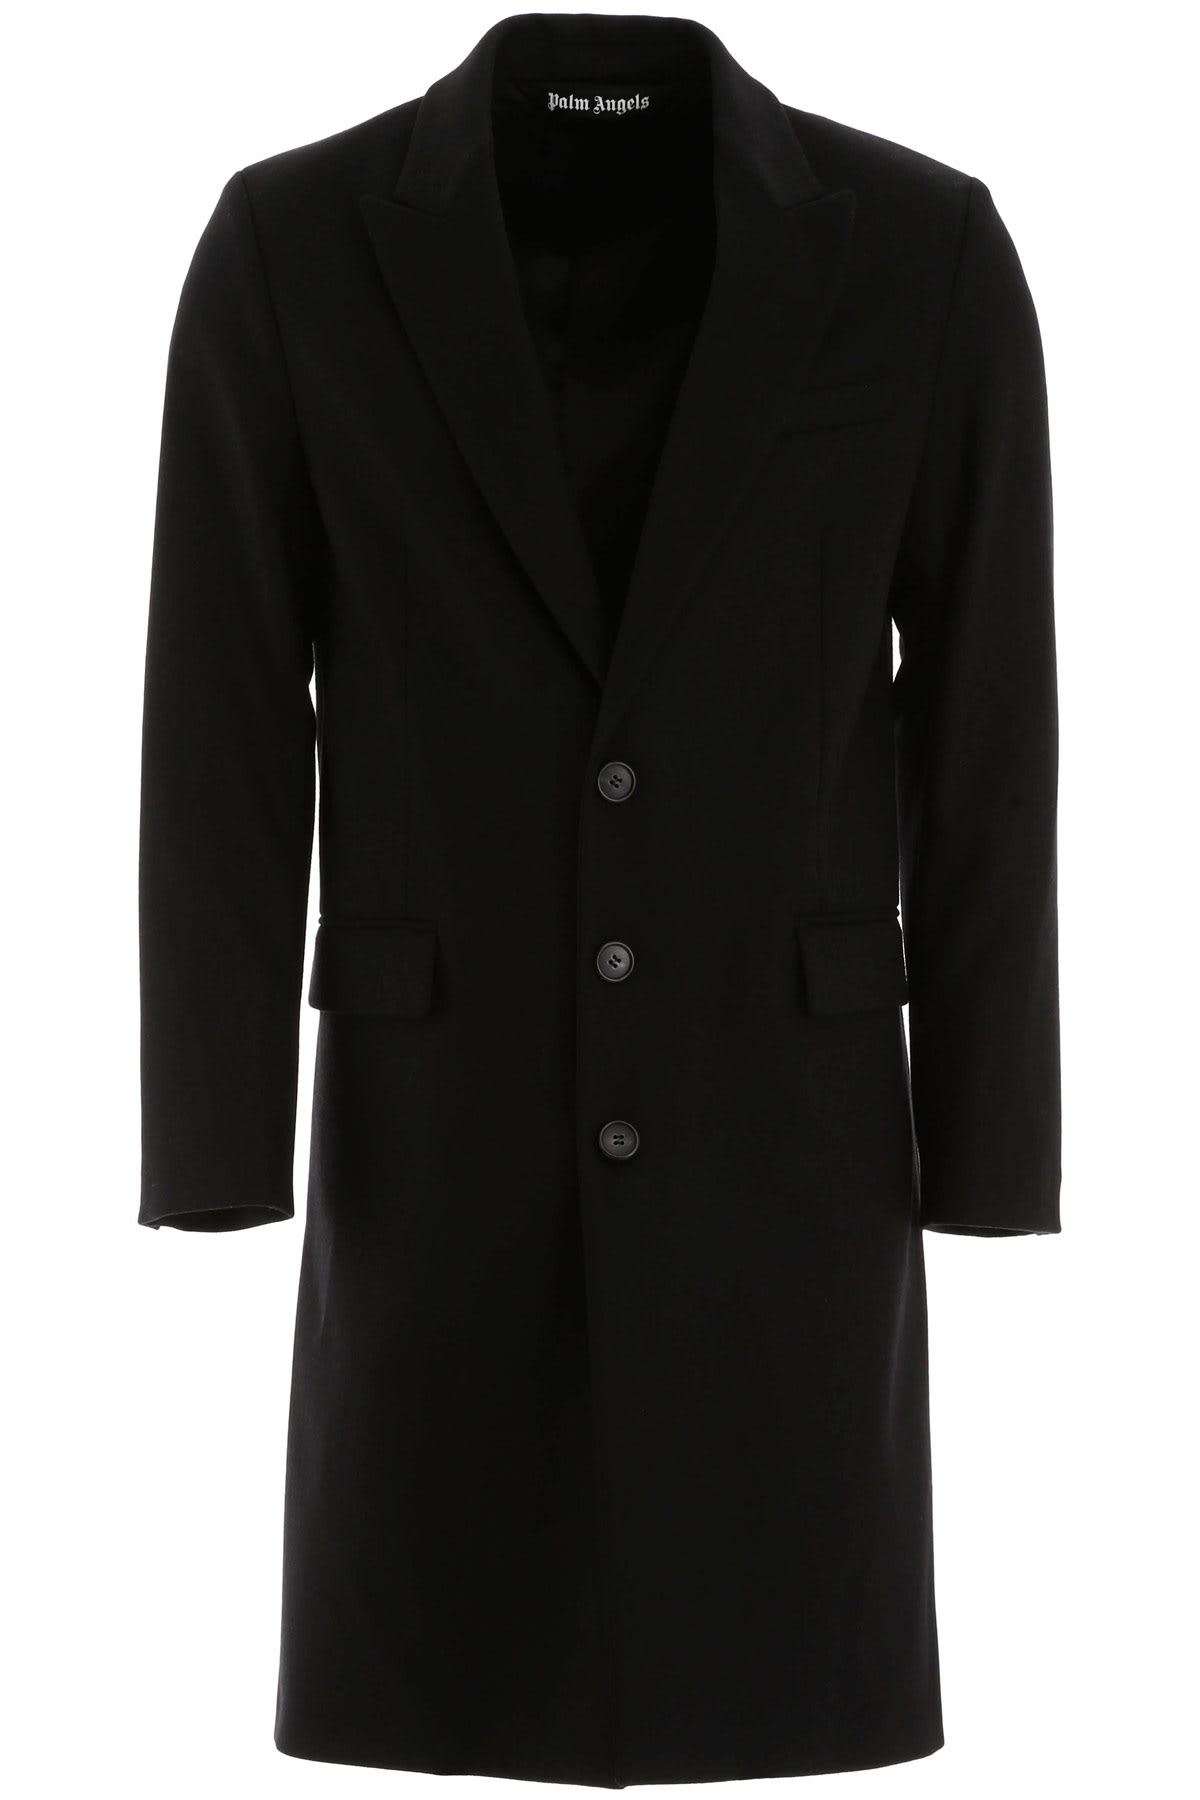 Palm Angels WOOL COAT WITH LOGO